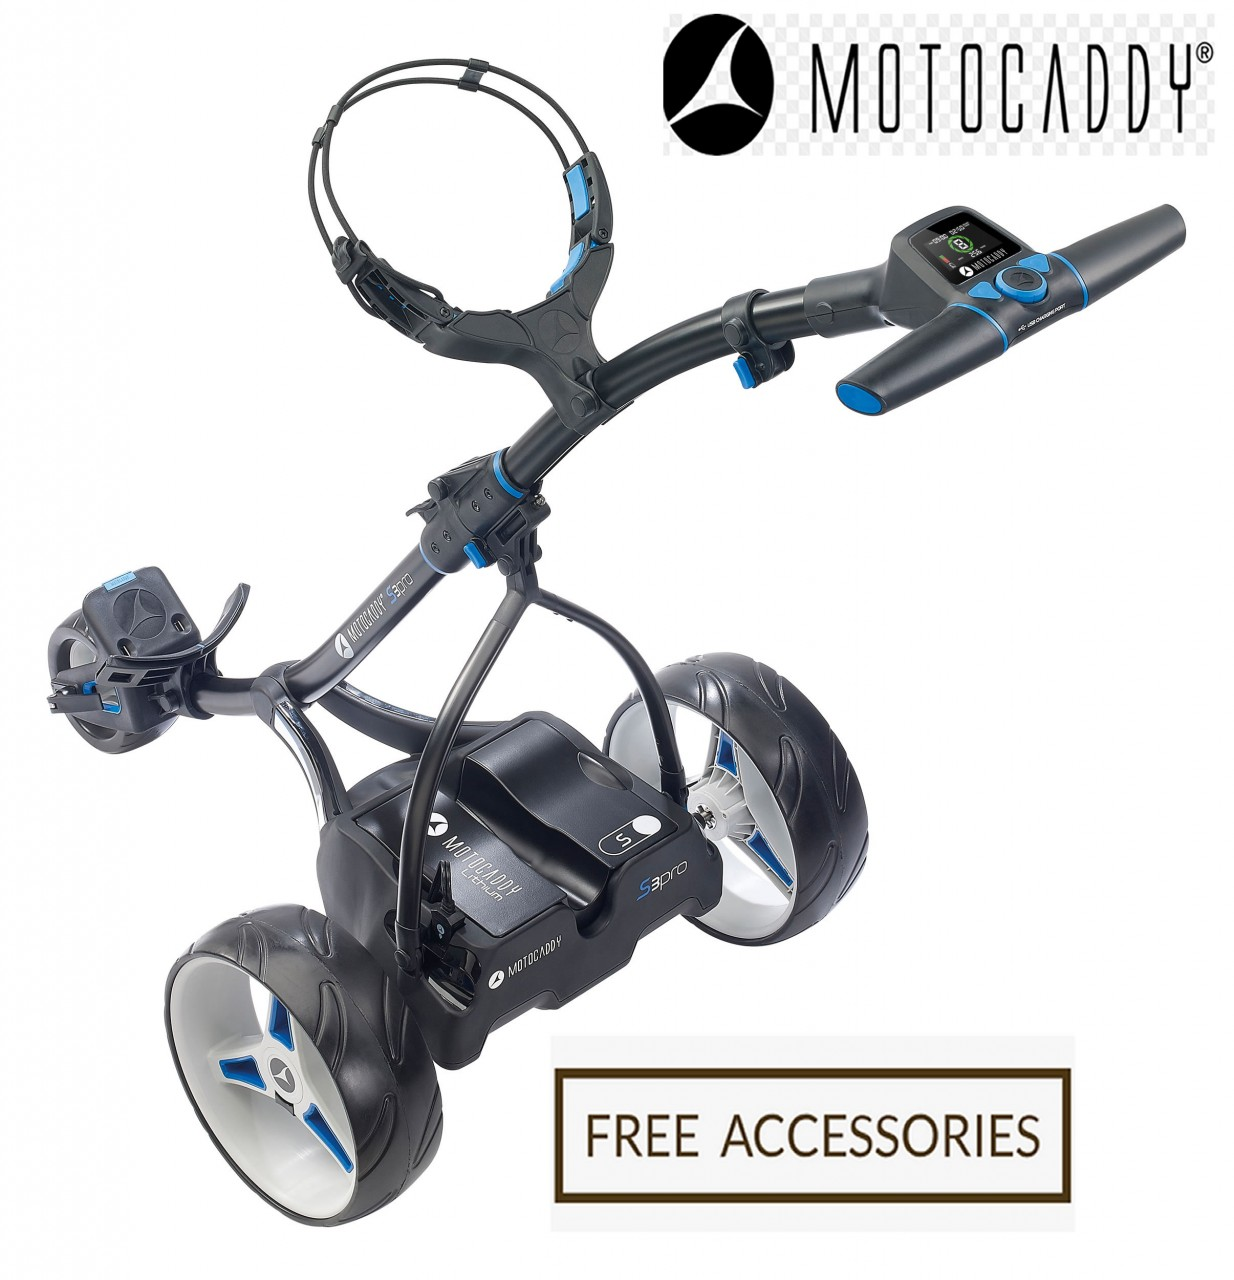 Motocaddy S3 Digital Lithium Electric Golf Trolley | Motogolf com